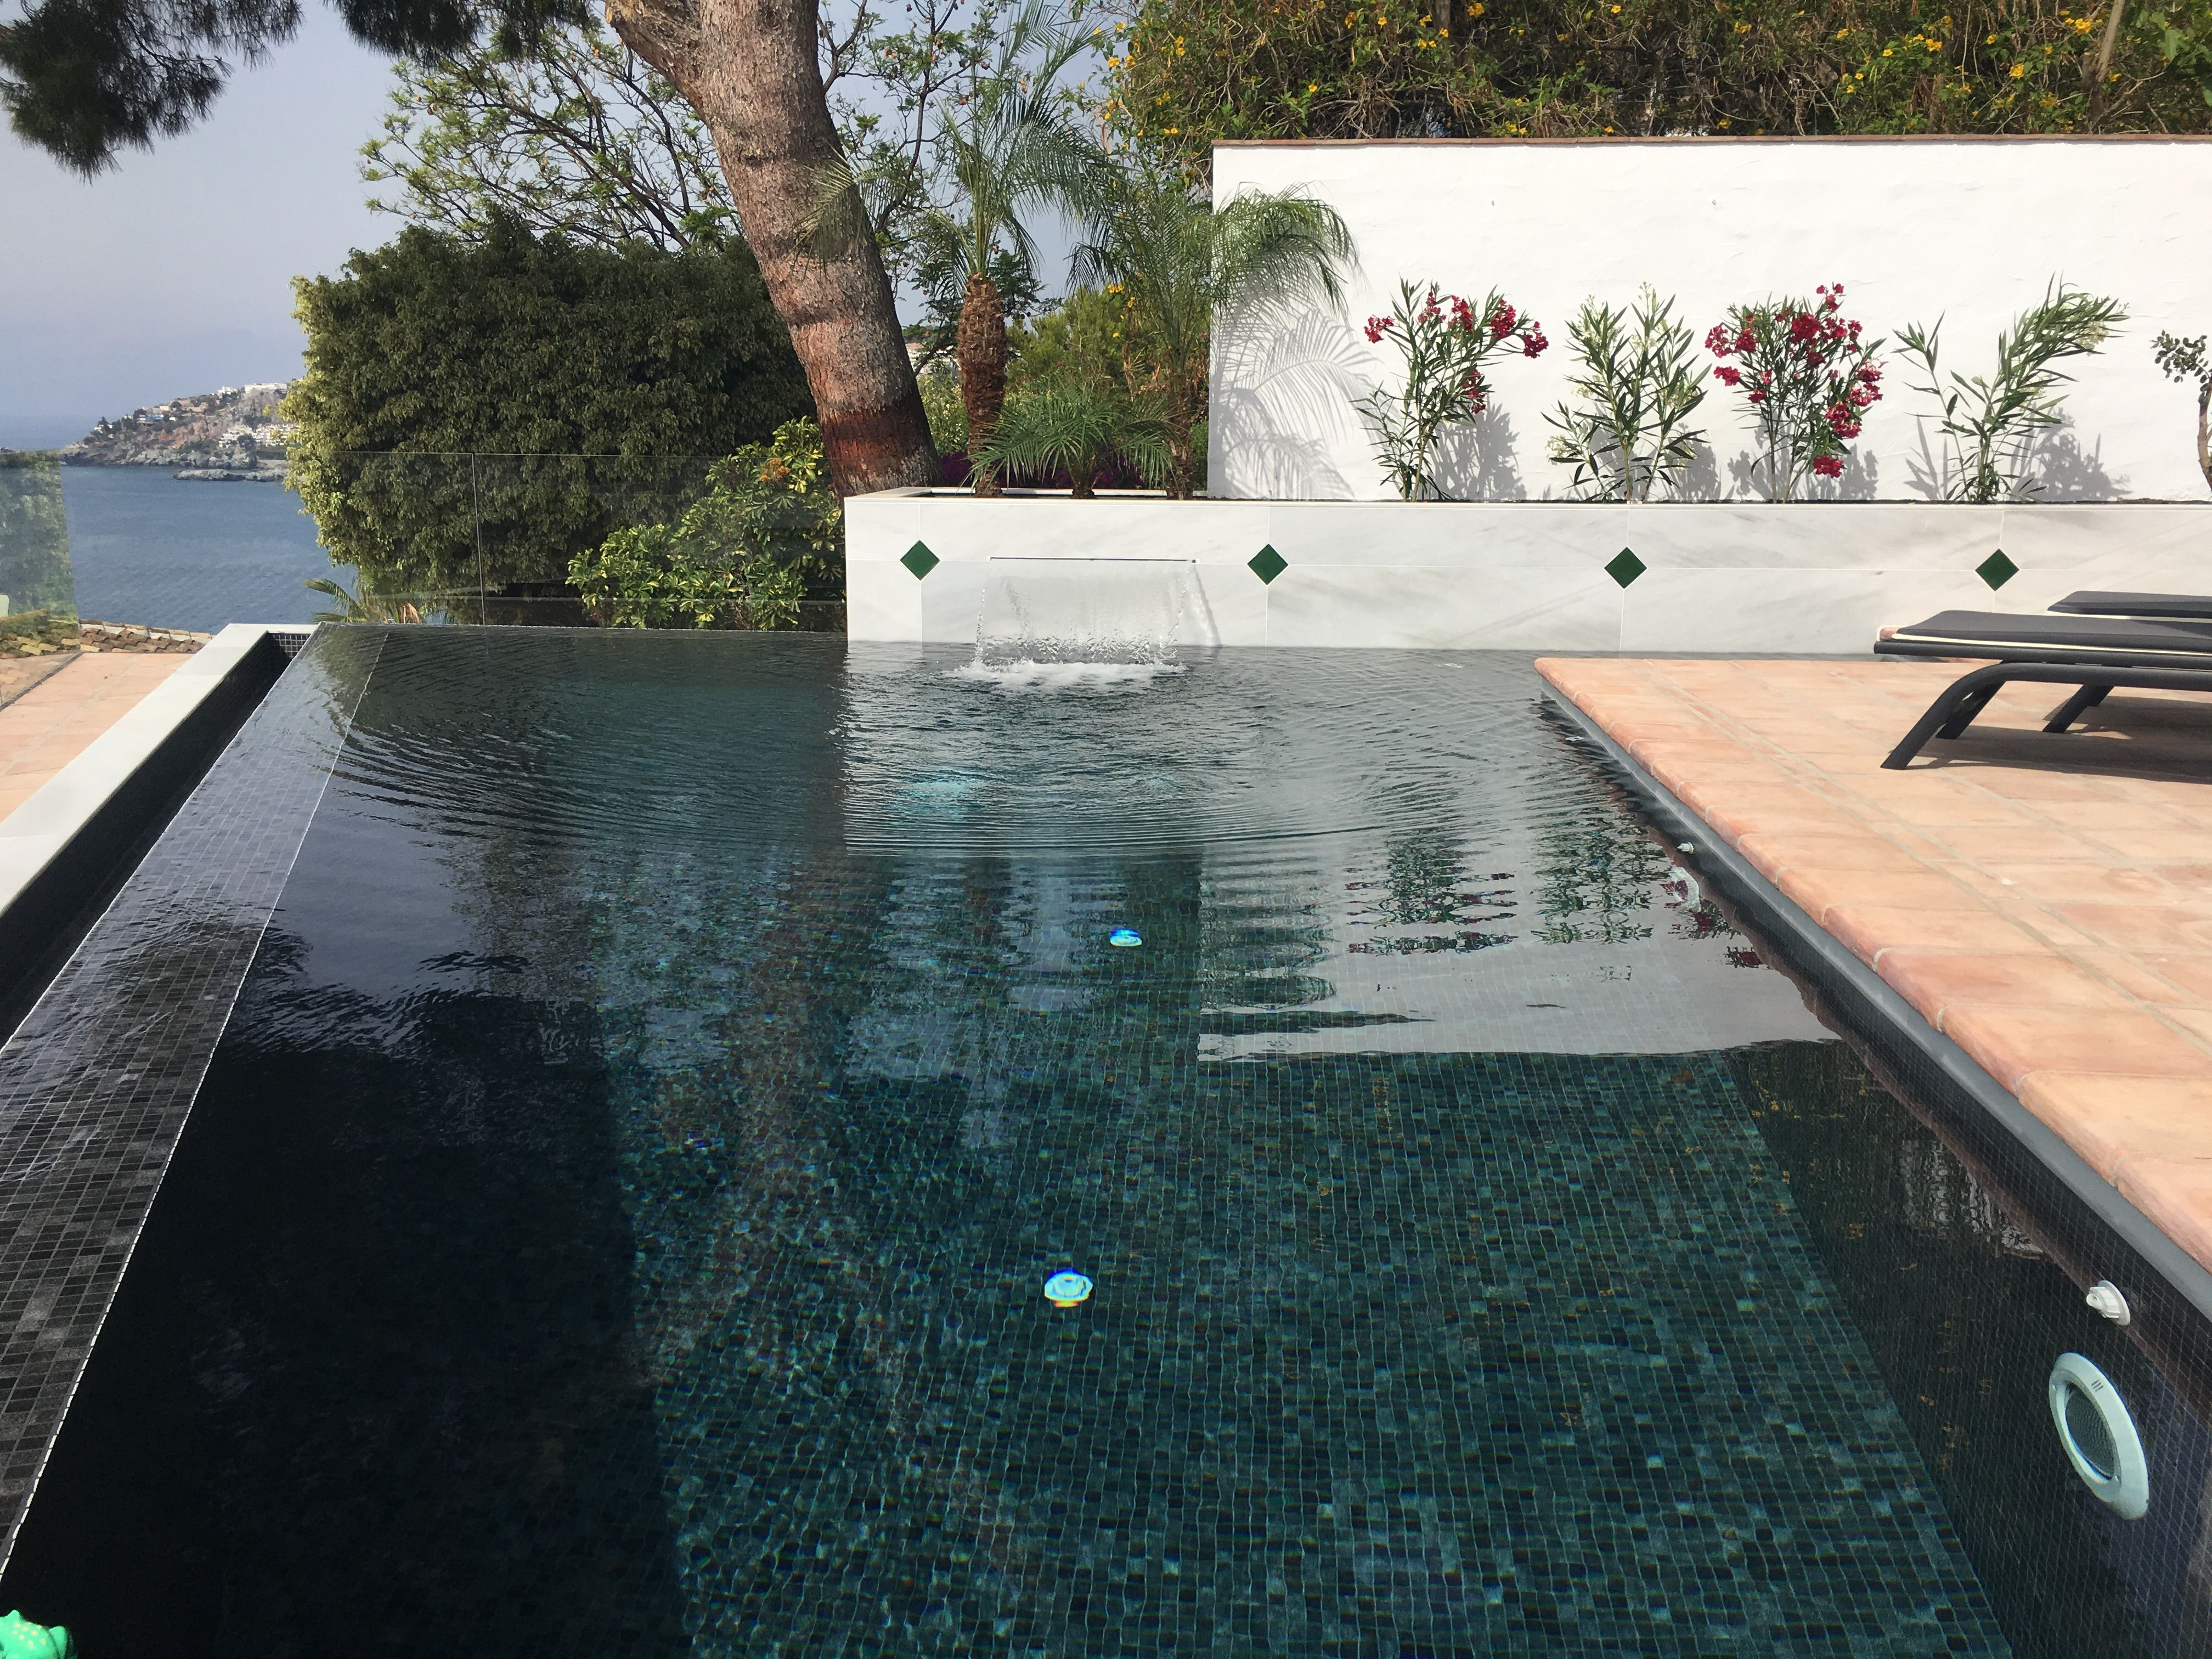 Piscina de borde rebosante con gresite negro infinity pool with